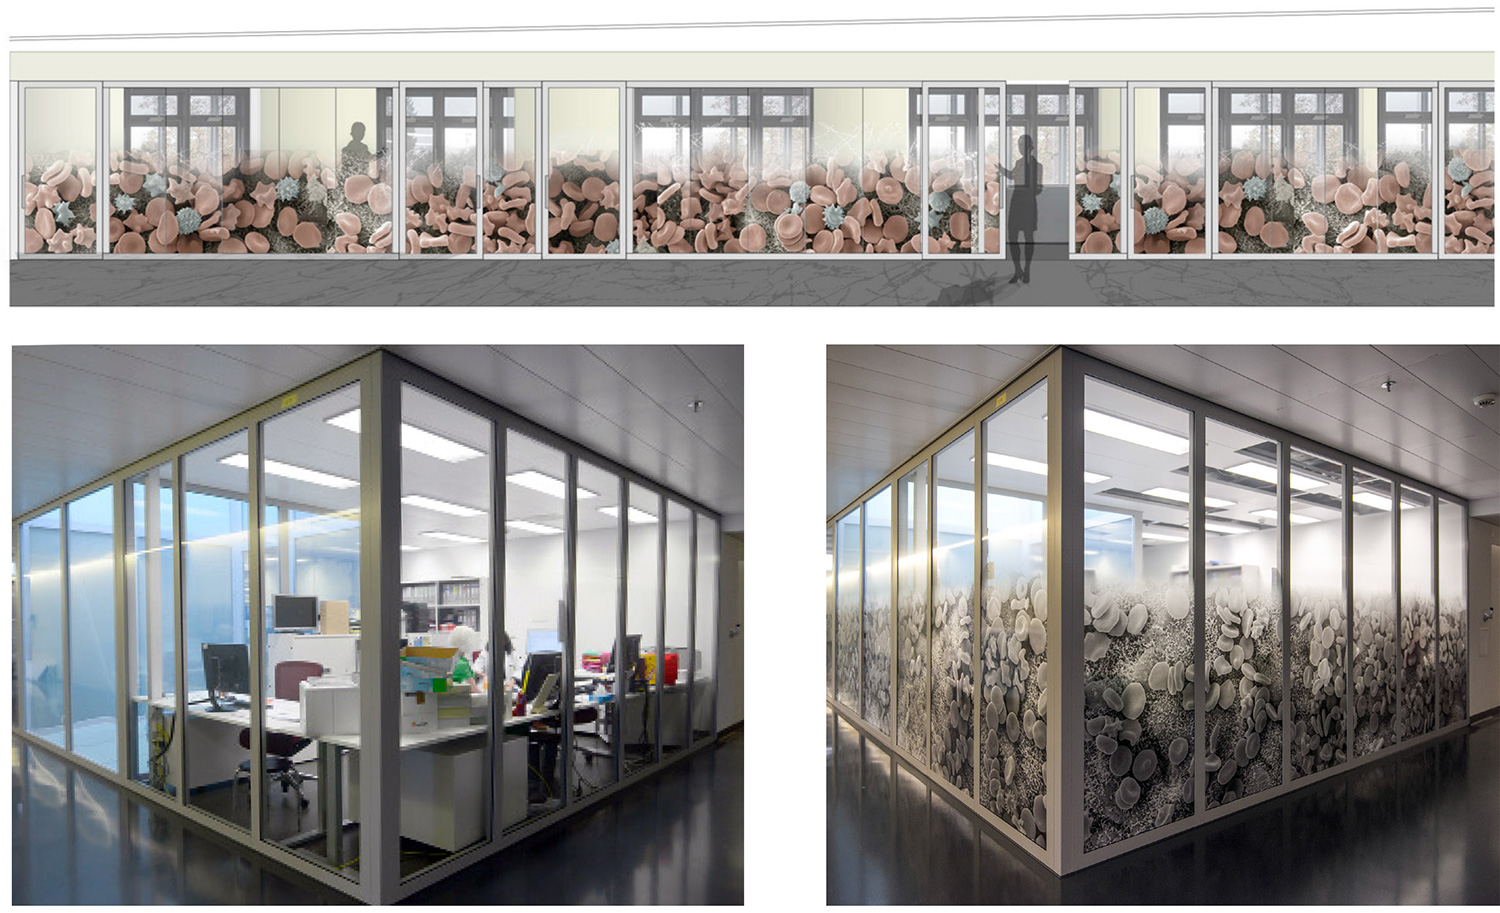 Architectural translations of the microscopic world   Sight protection design for hospital offices